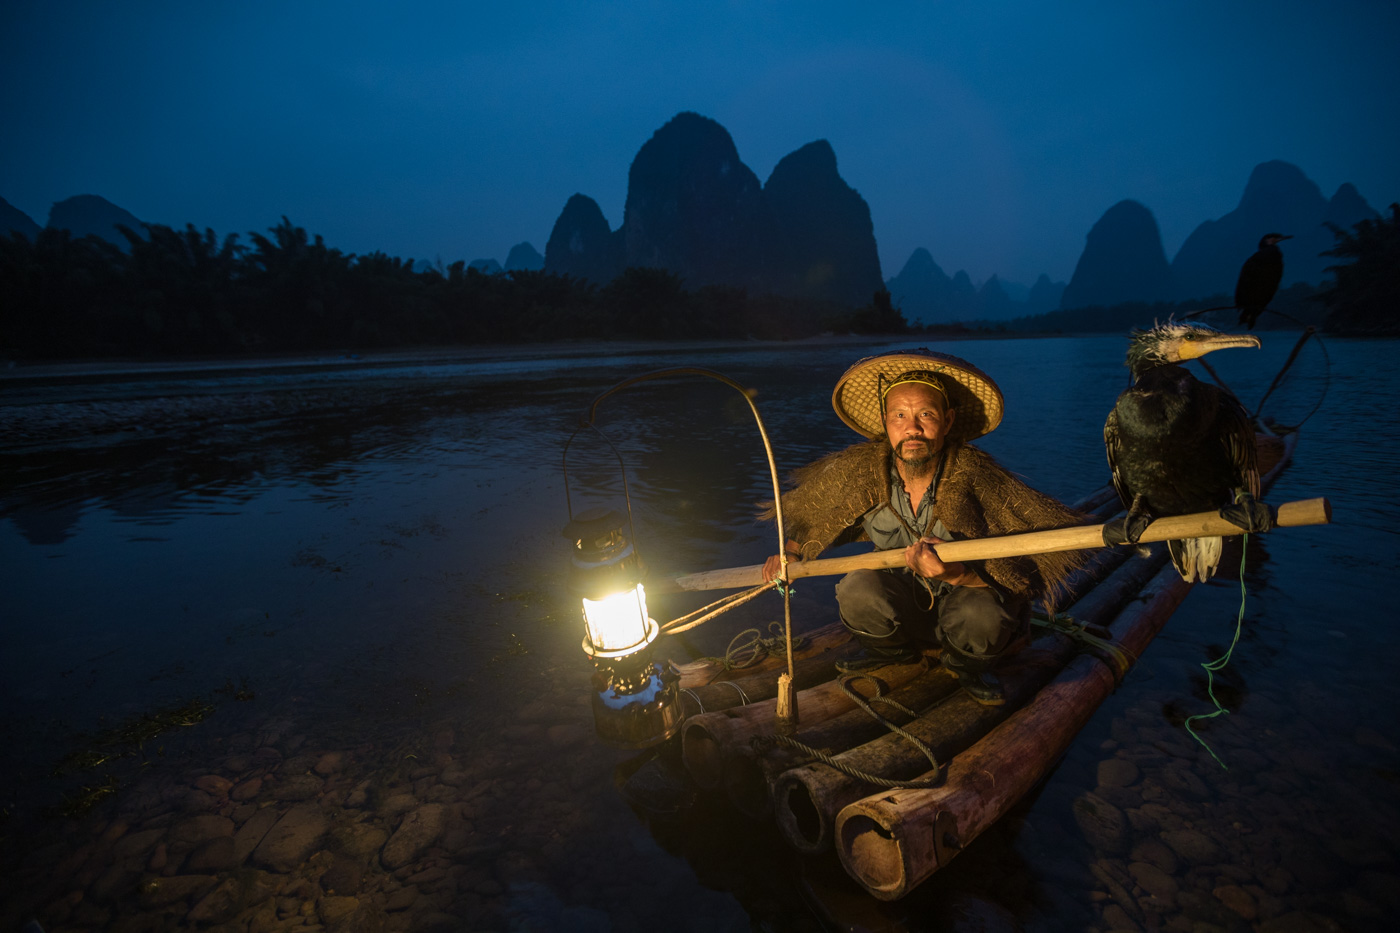 Six other photographers shot from a distance on shore instead of getting wet - Yangshuo Fisherman